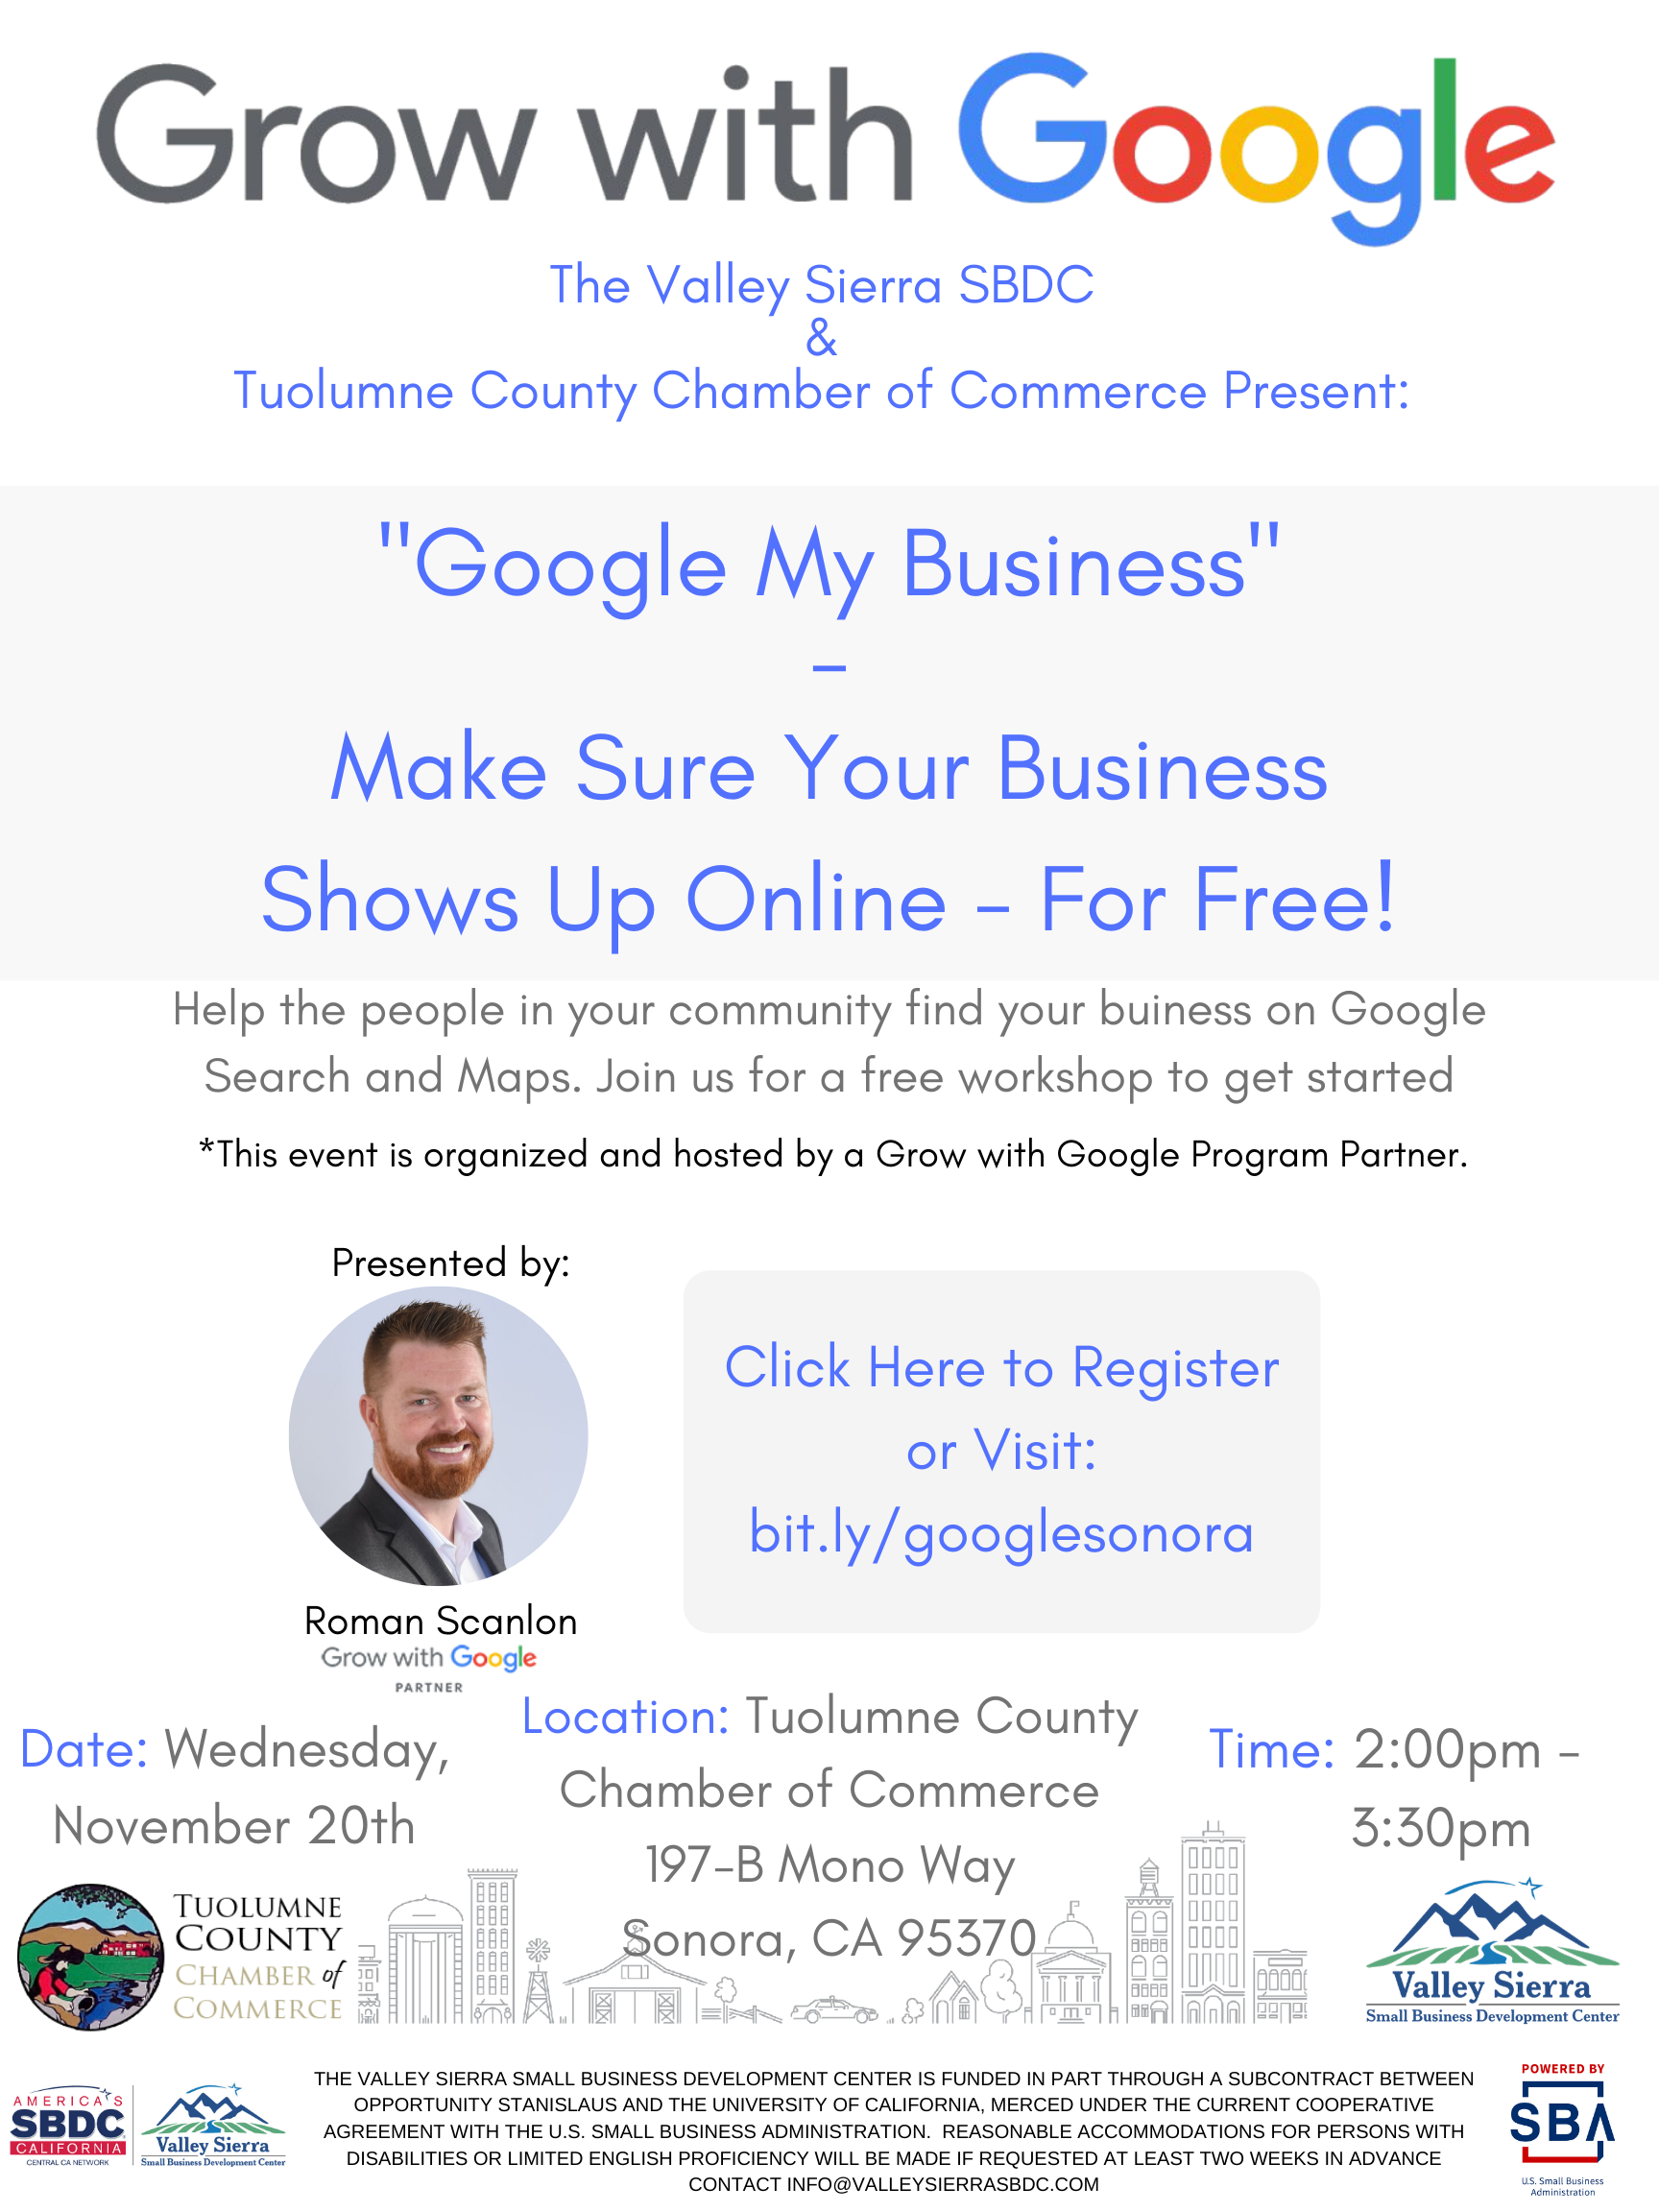 Google My Business Flyer hosted by Valley Sierra SBDC & Tuolumne County Chamber of Commerce